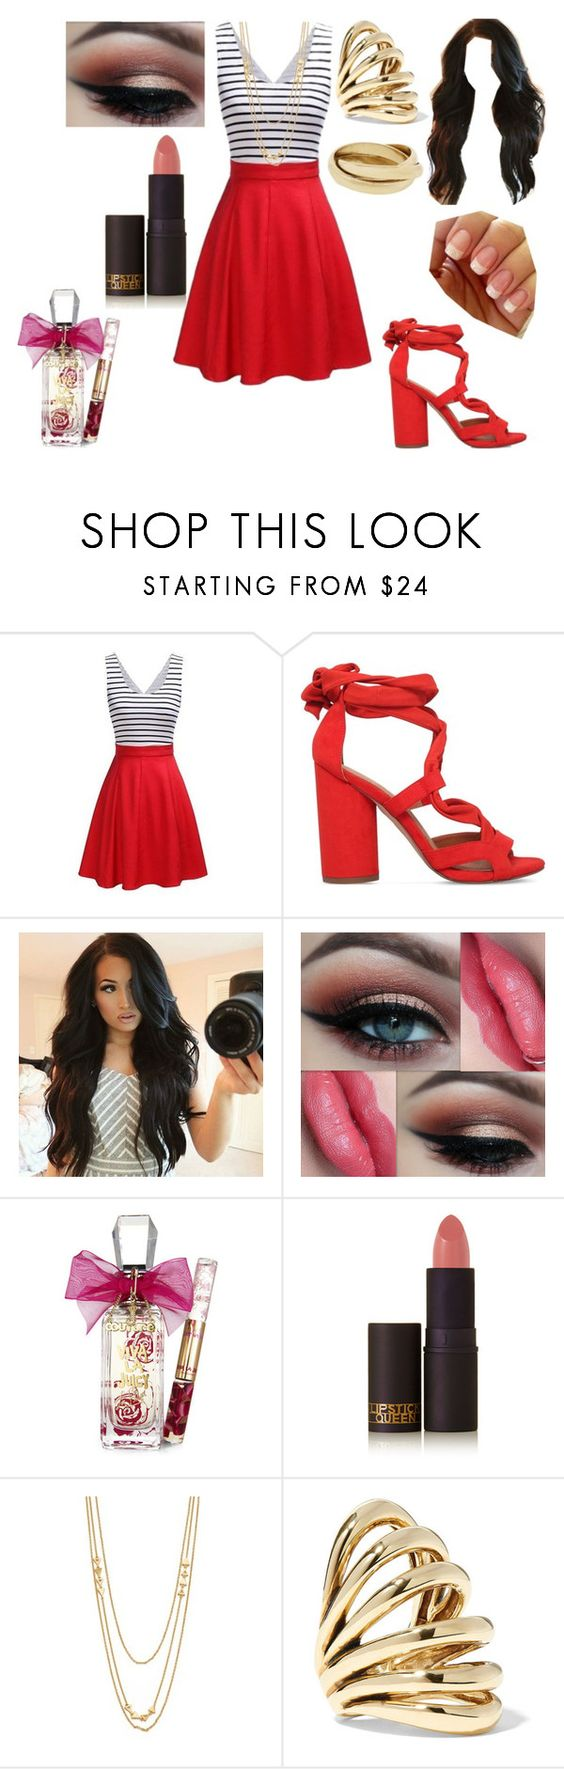 """""""Untitled #485"""" by nerdynerdy on Polyvore featuring KG Kurt Geiger, Juicy Couture, Lipstick Queen, Gorjana and Lisa Eisner"""